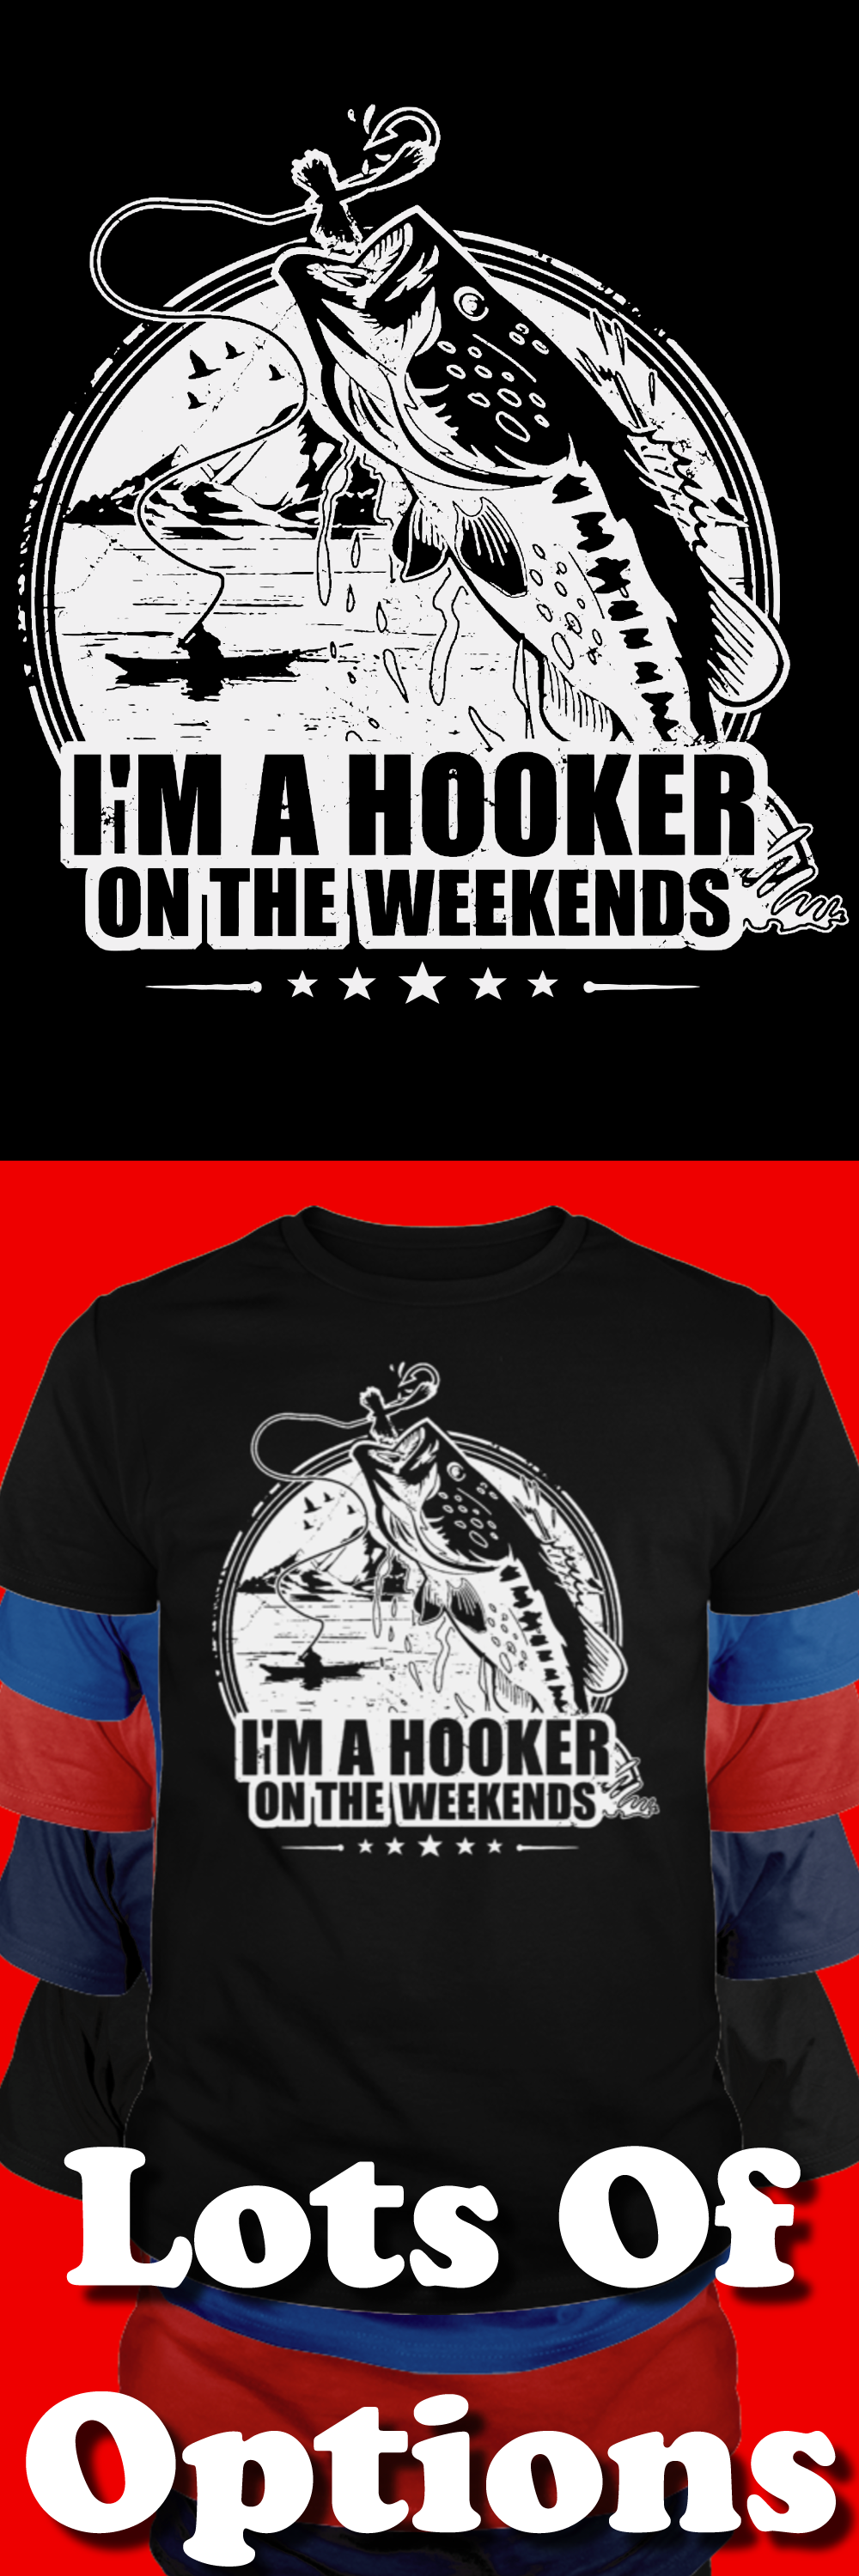 Wear I Am A Hooker On The Weekends Tee?   Catfish, Trout and Bass